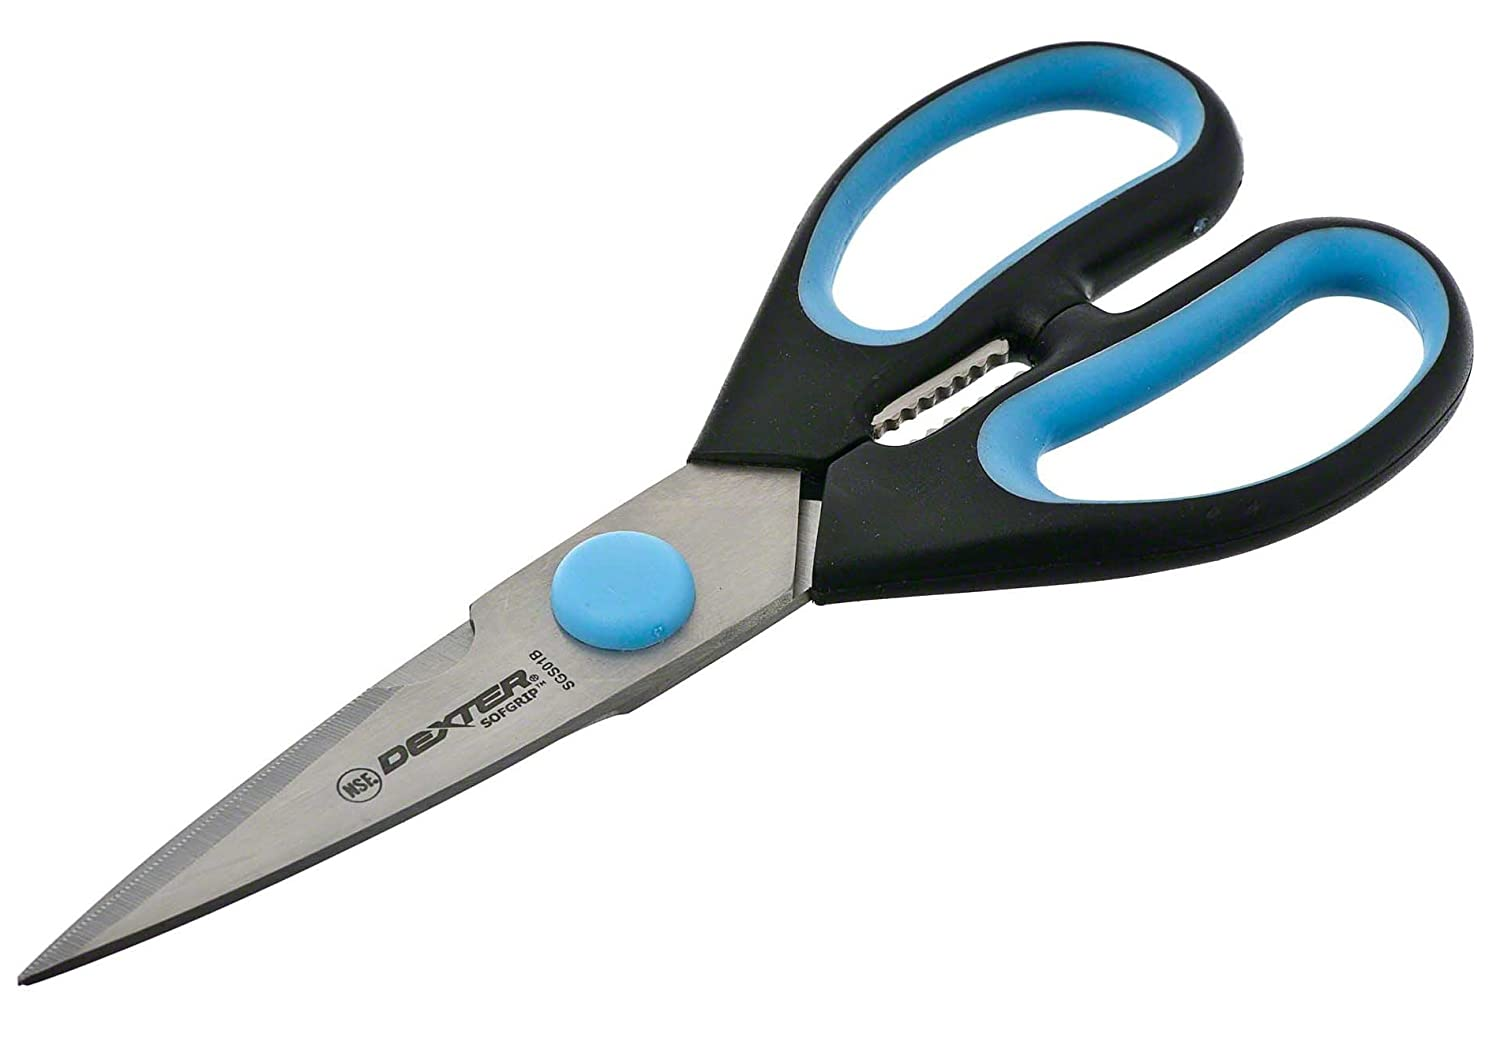 Amazon.com: Dexter Russell (SGS01B CP)   Sofgrip Kitchen Shears: Cutlery  Shears: Kitchen U0026 Dining